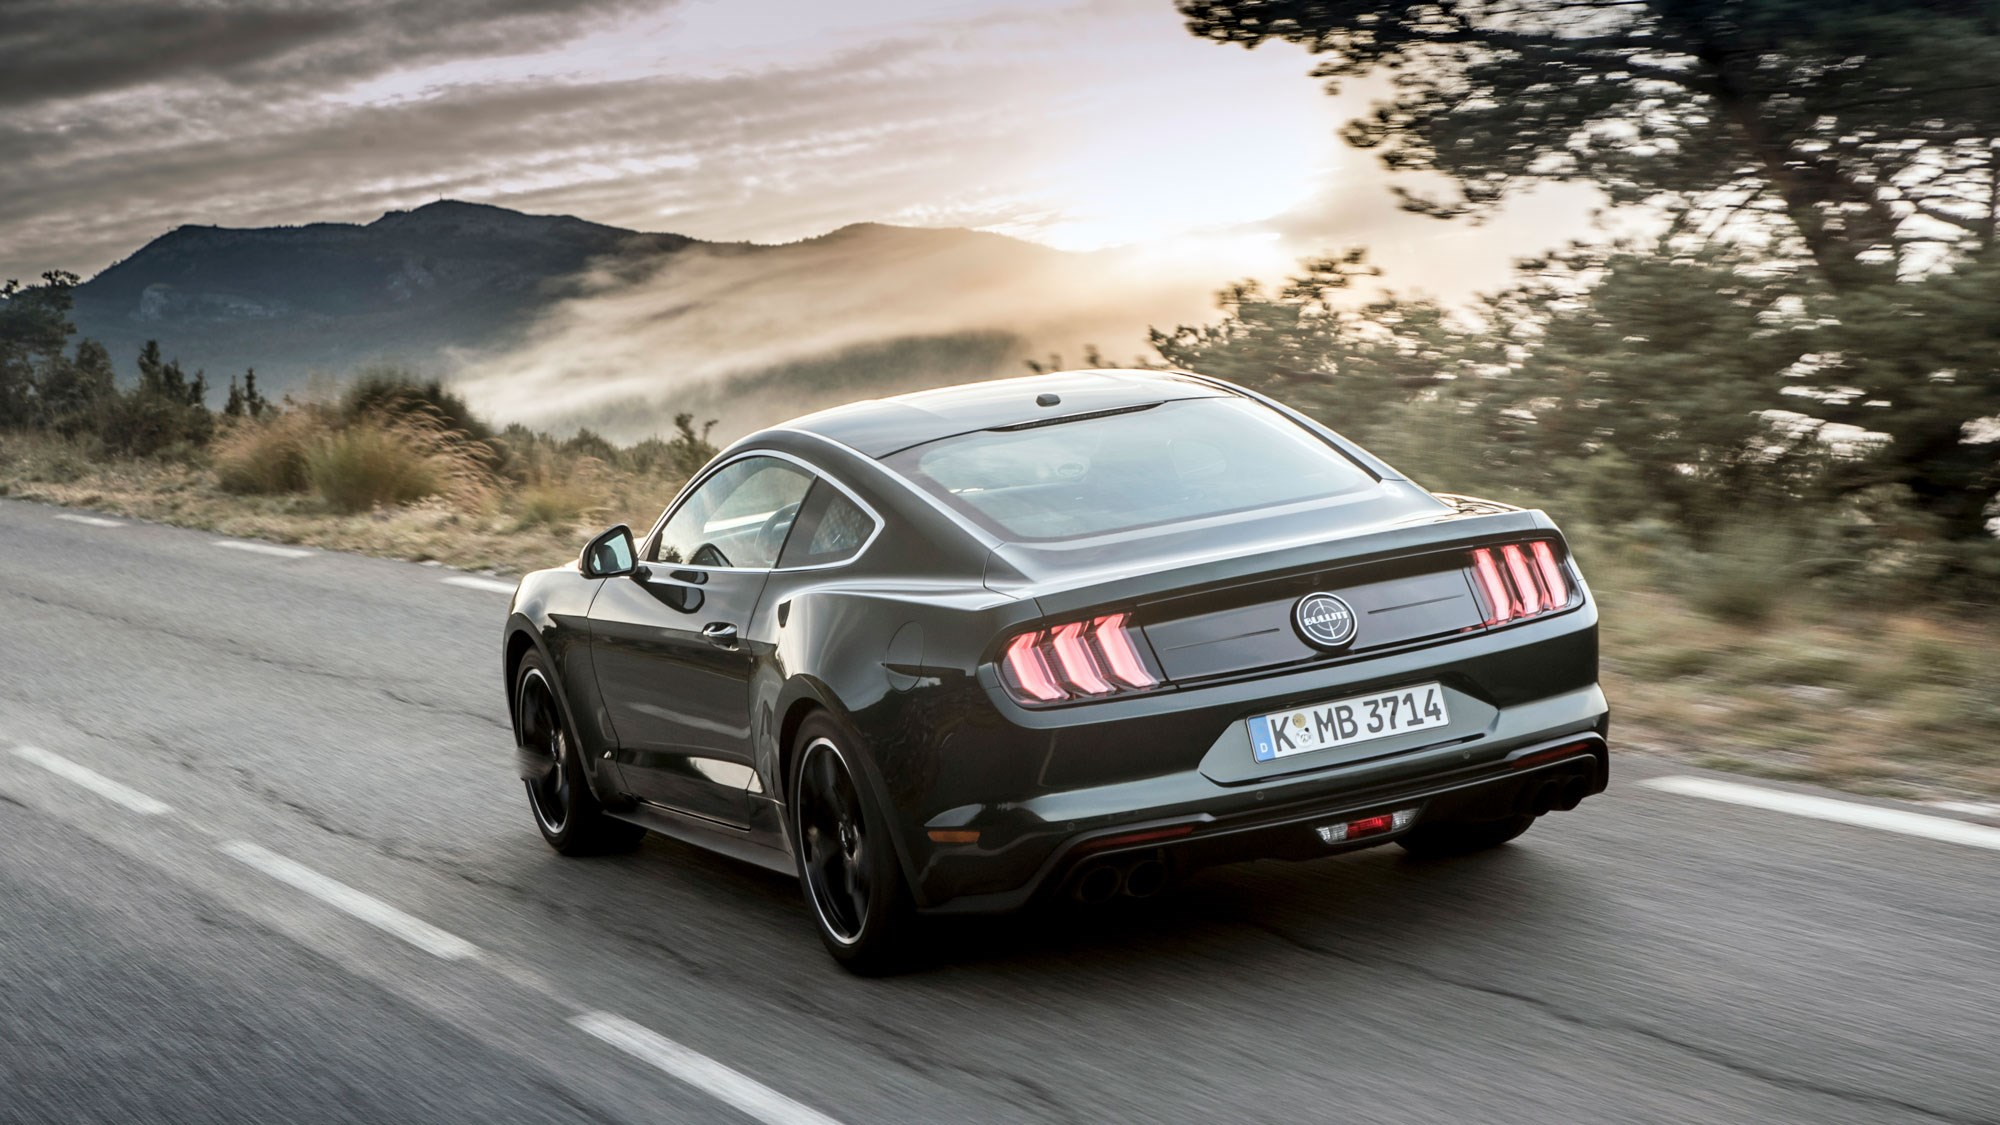 Ford Mustang Lease >> Ford Mustang Bullitt (2019) review: a little more firepower | CAR Magazine